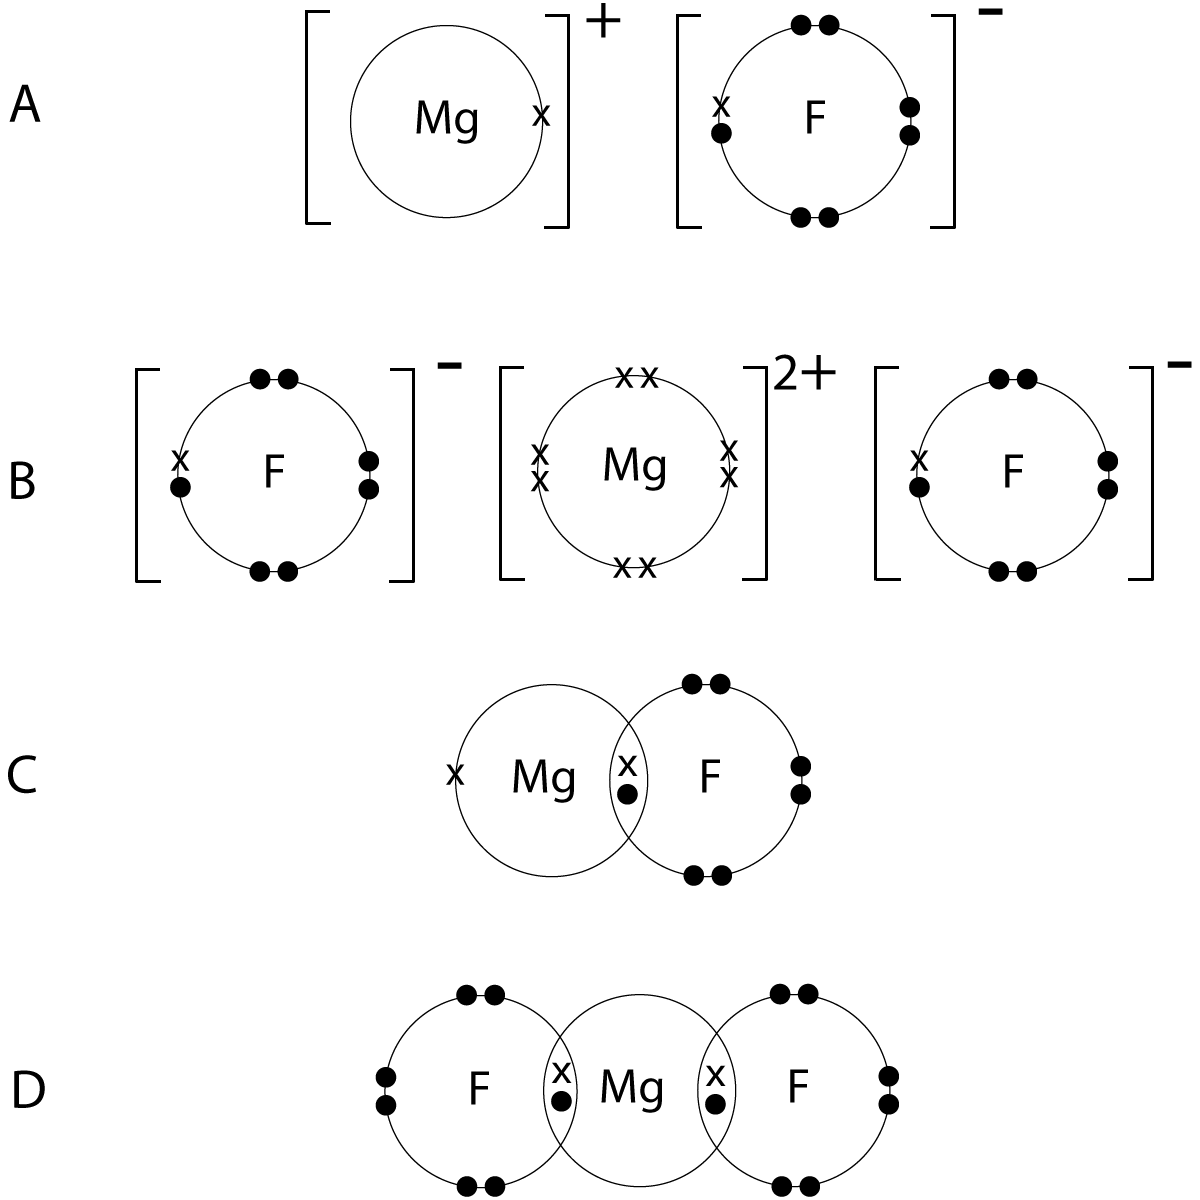 Dot And Cross Diagram For Sodium Fluorine